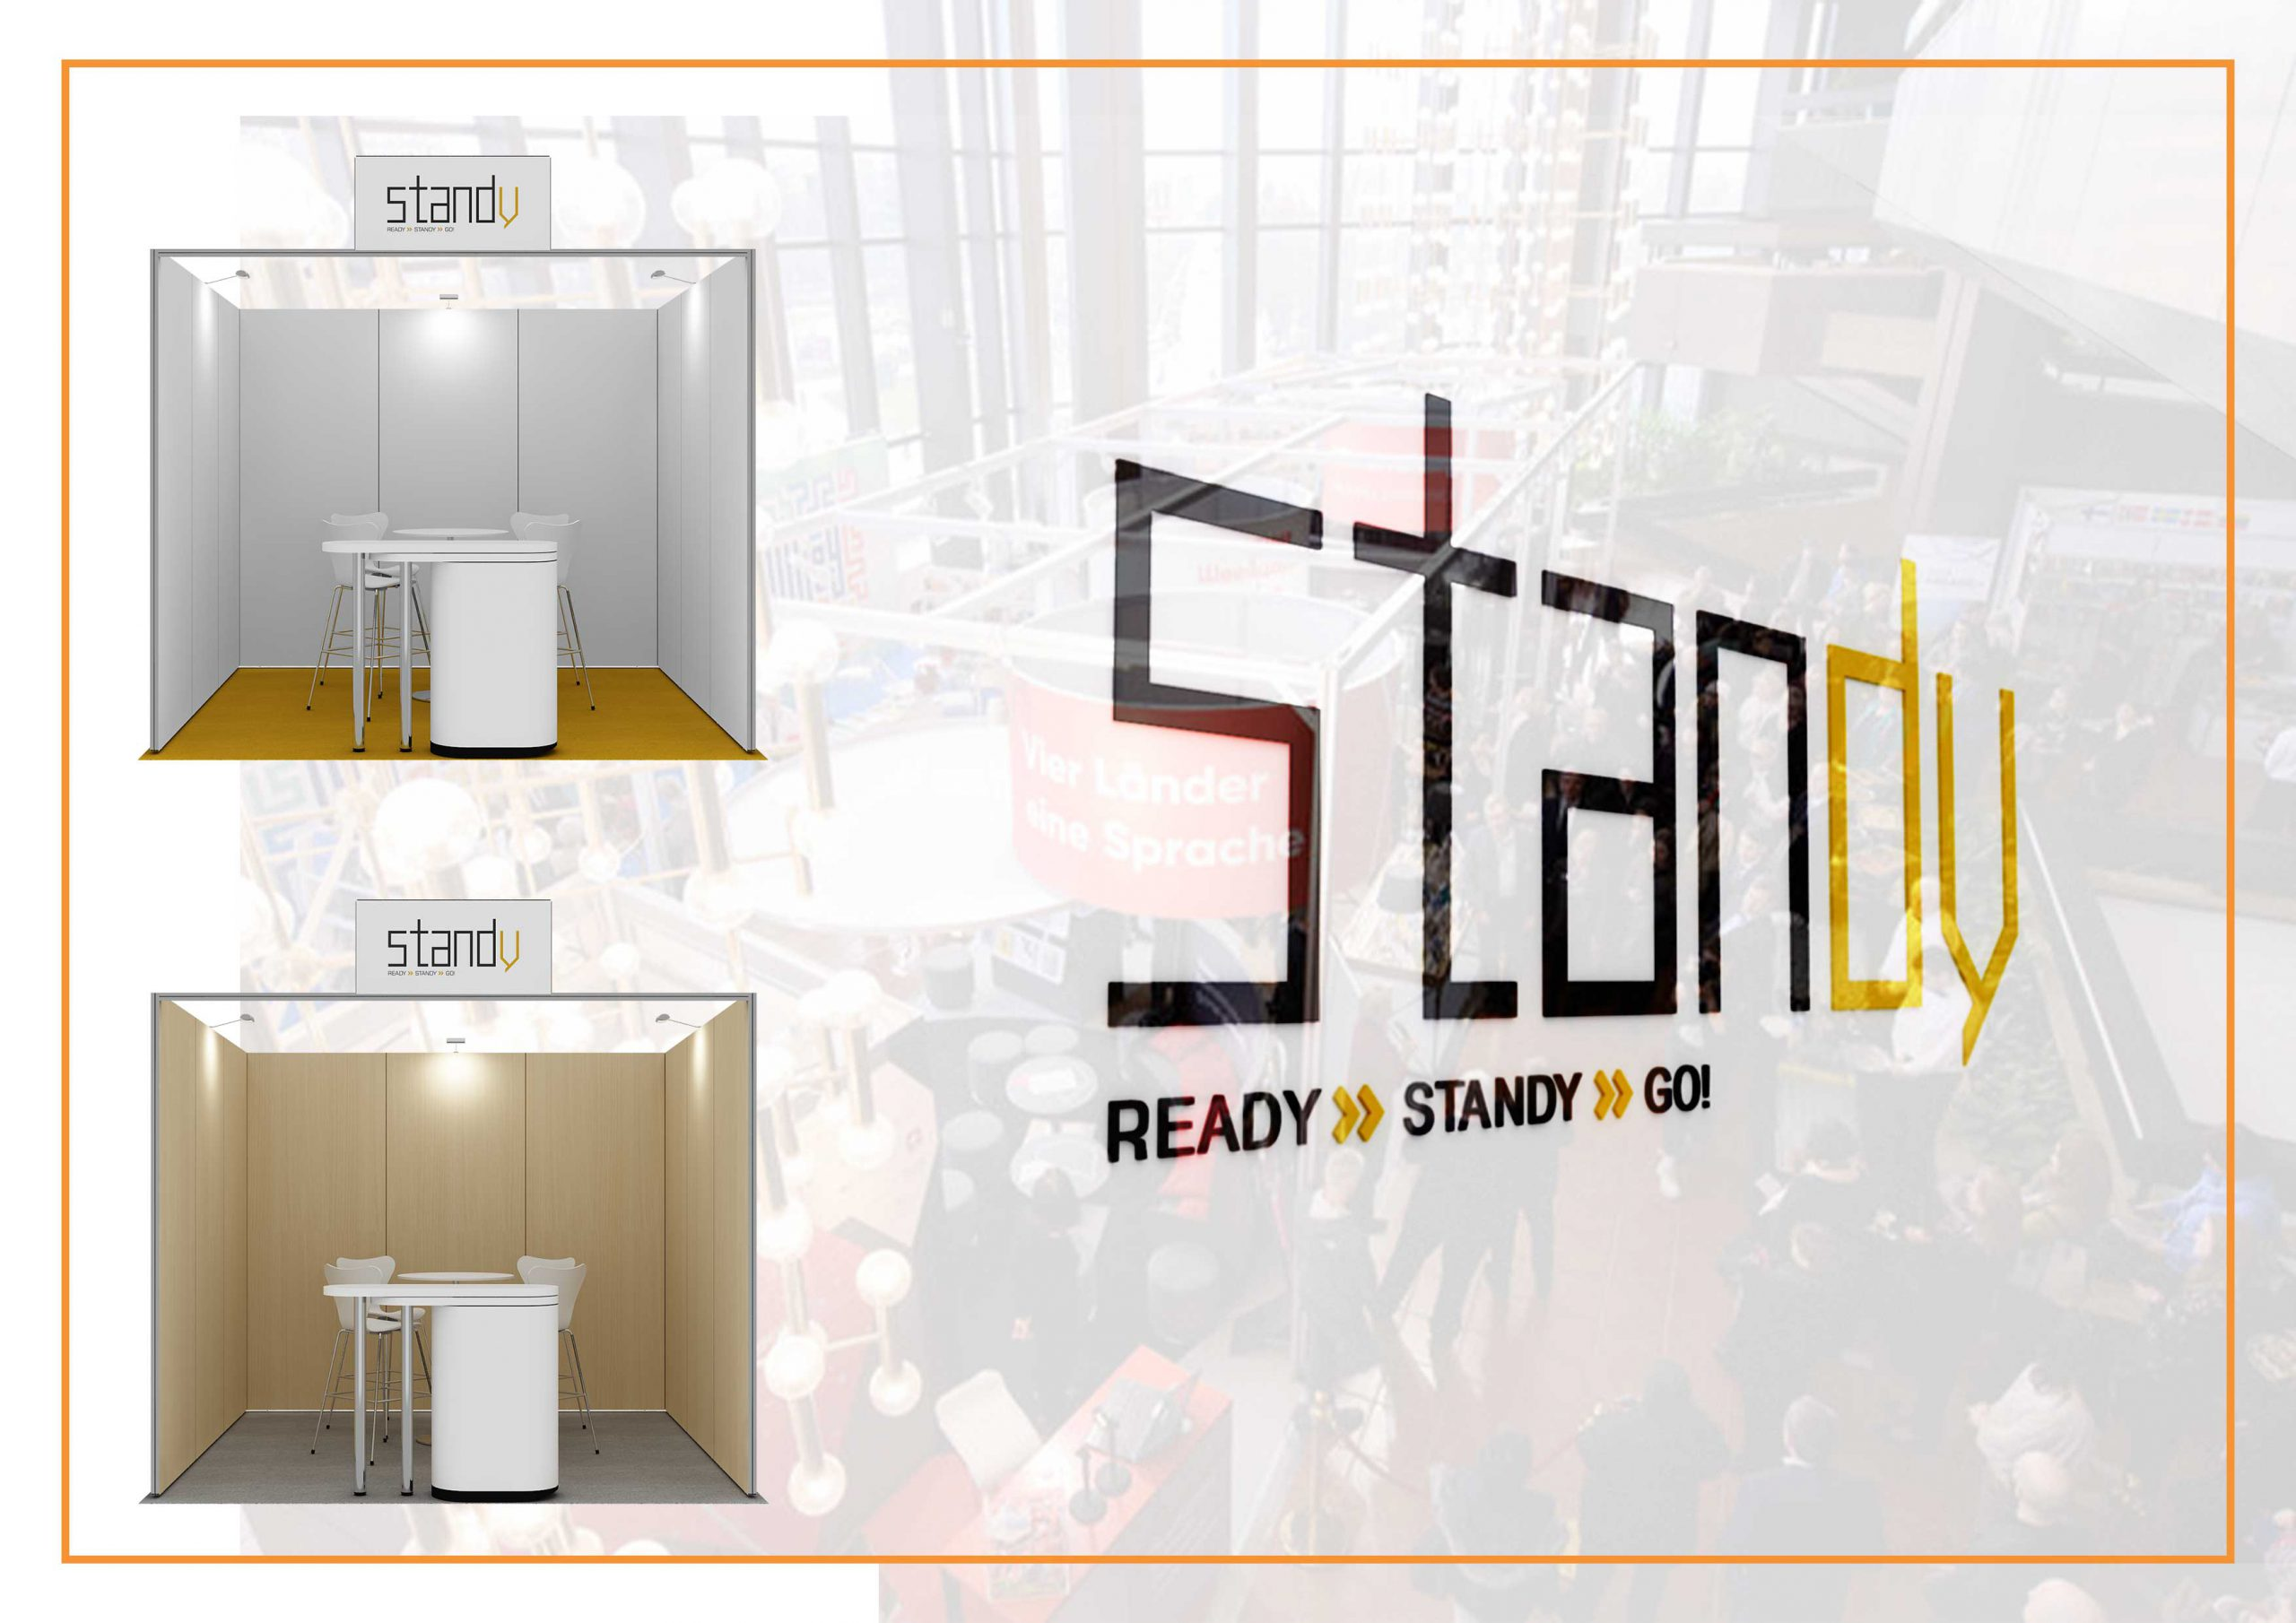 Standy Logo with two images of stand designs